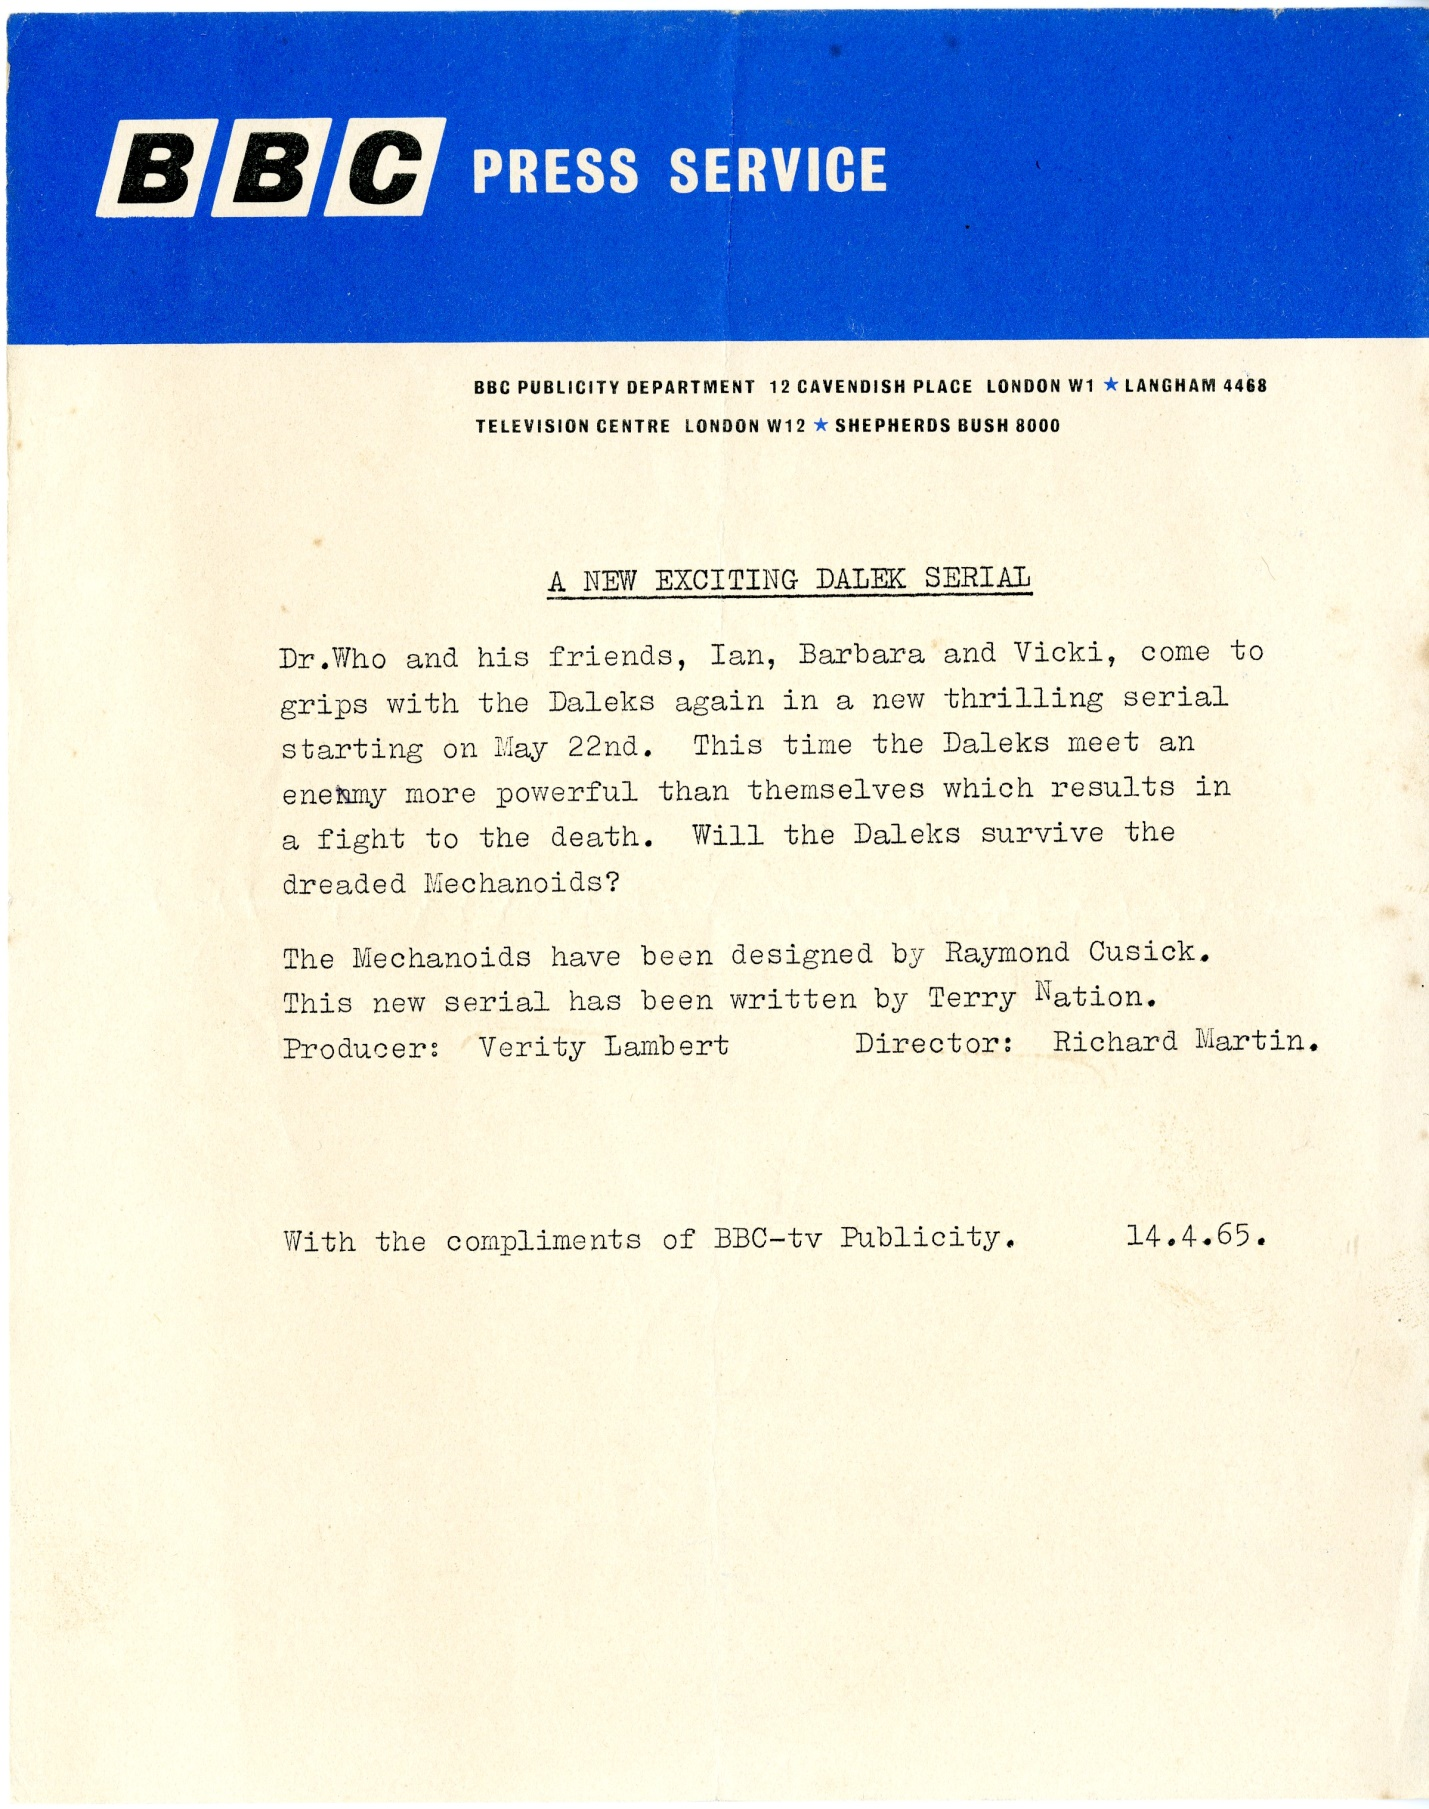 BBC TV Publicity Department press release for The Chase, April 14, 1965